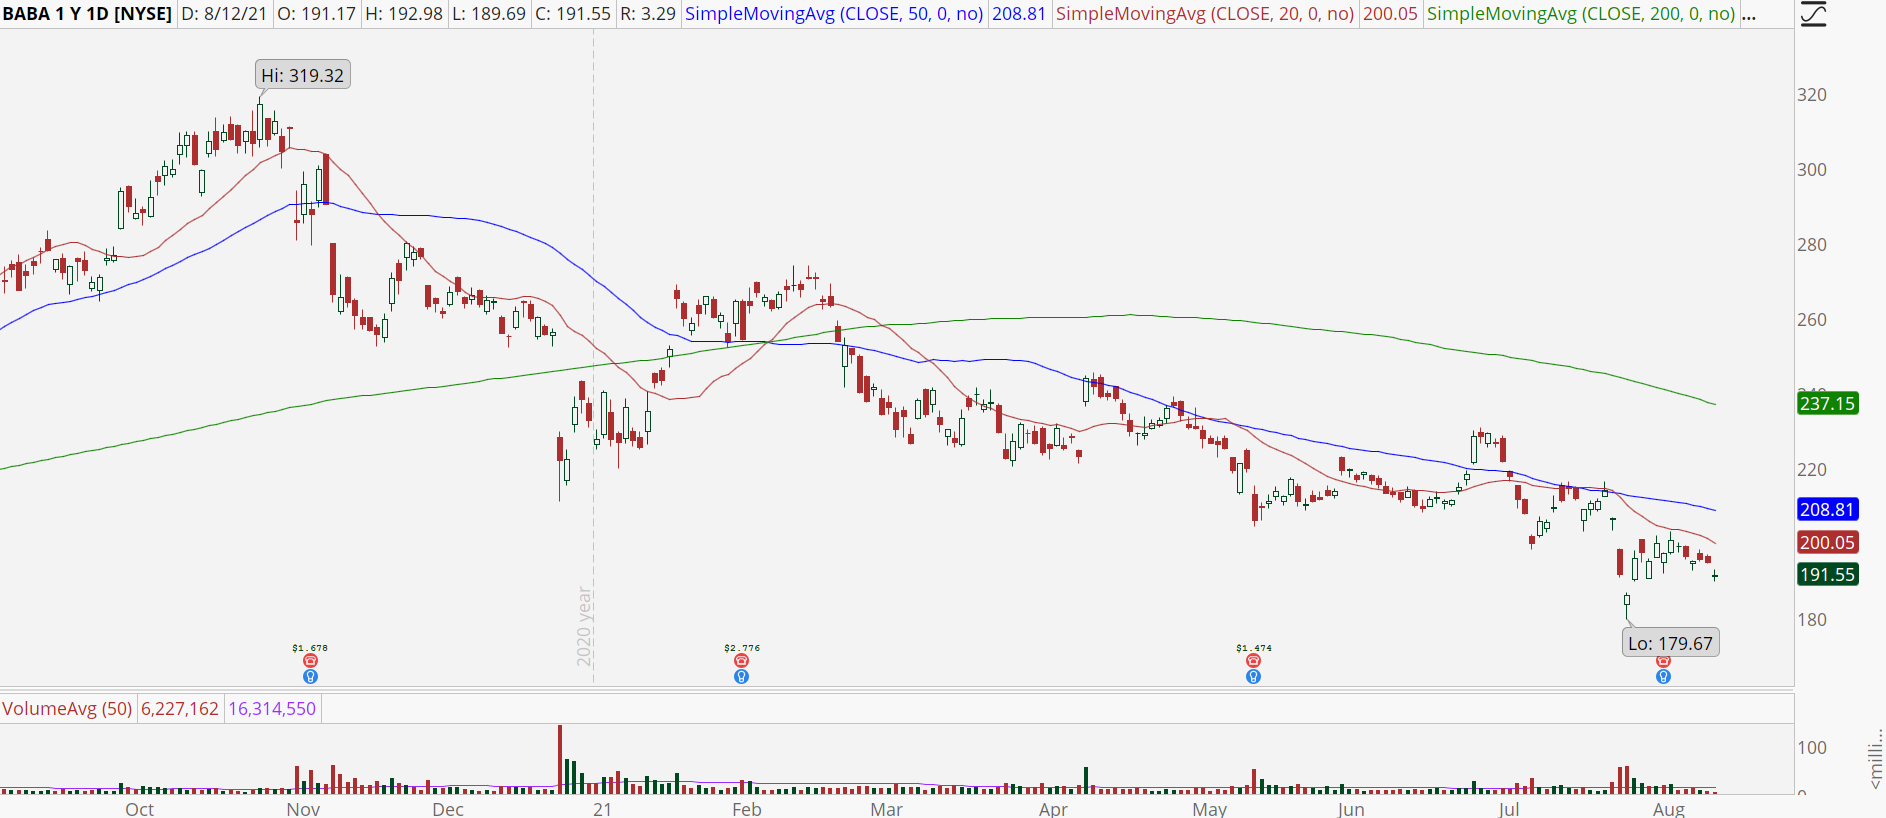 Alibaba (BABA) stock chart with downtrend.